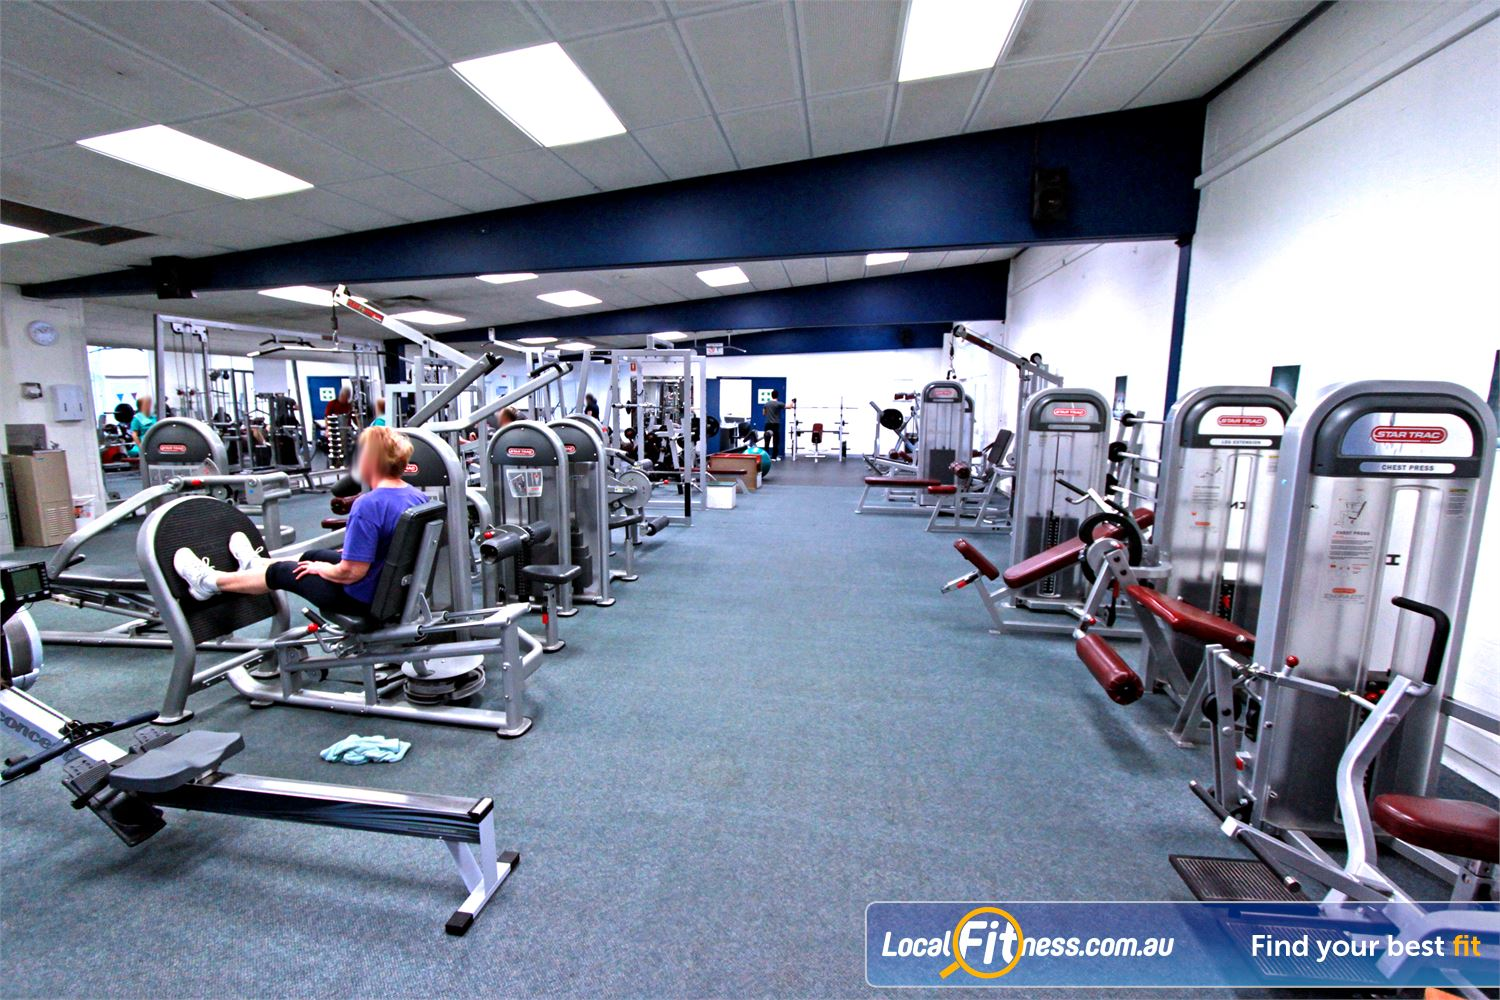 East Keilor Leisure Centre Keilor East Our Keilor East gym is fully equipped with the latest strength training equipment.